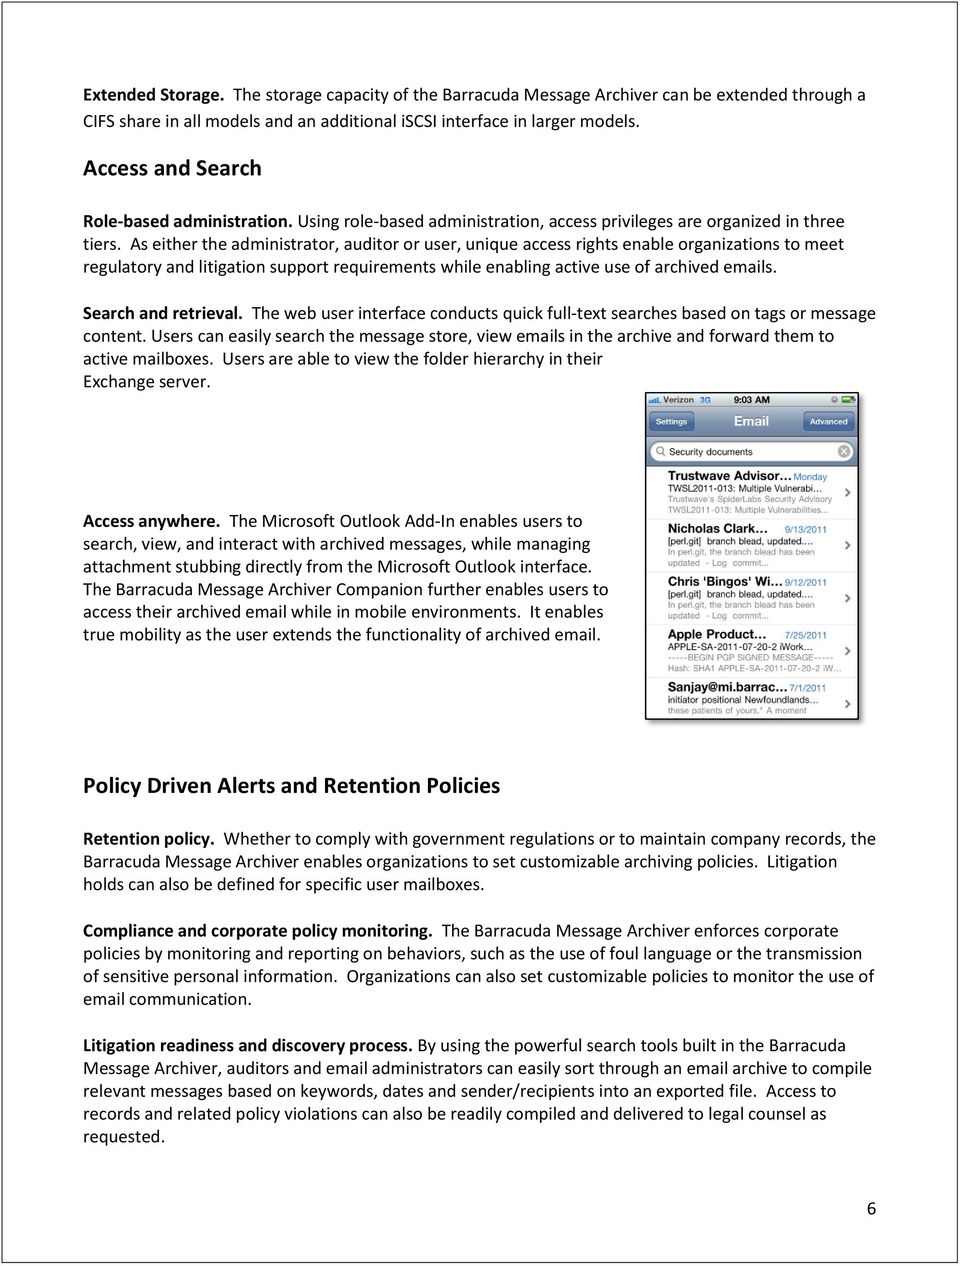 As either the administrator, auditor or user, unique access rights enable organizations to meet regulatory and litigation support requirements while enabling active use of archived emails.